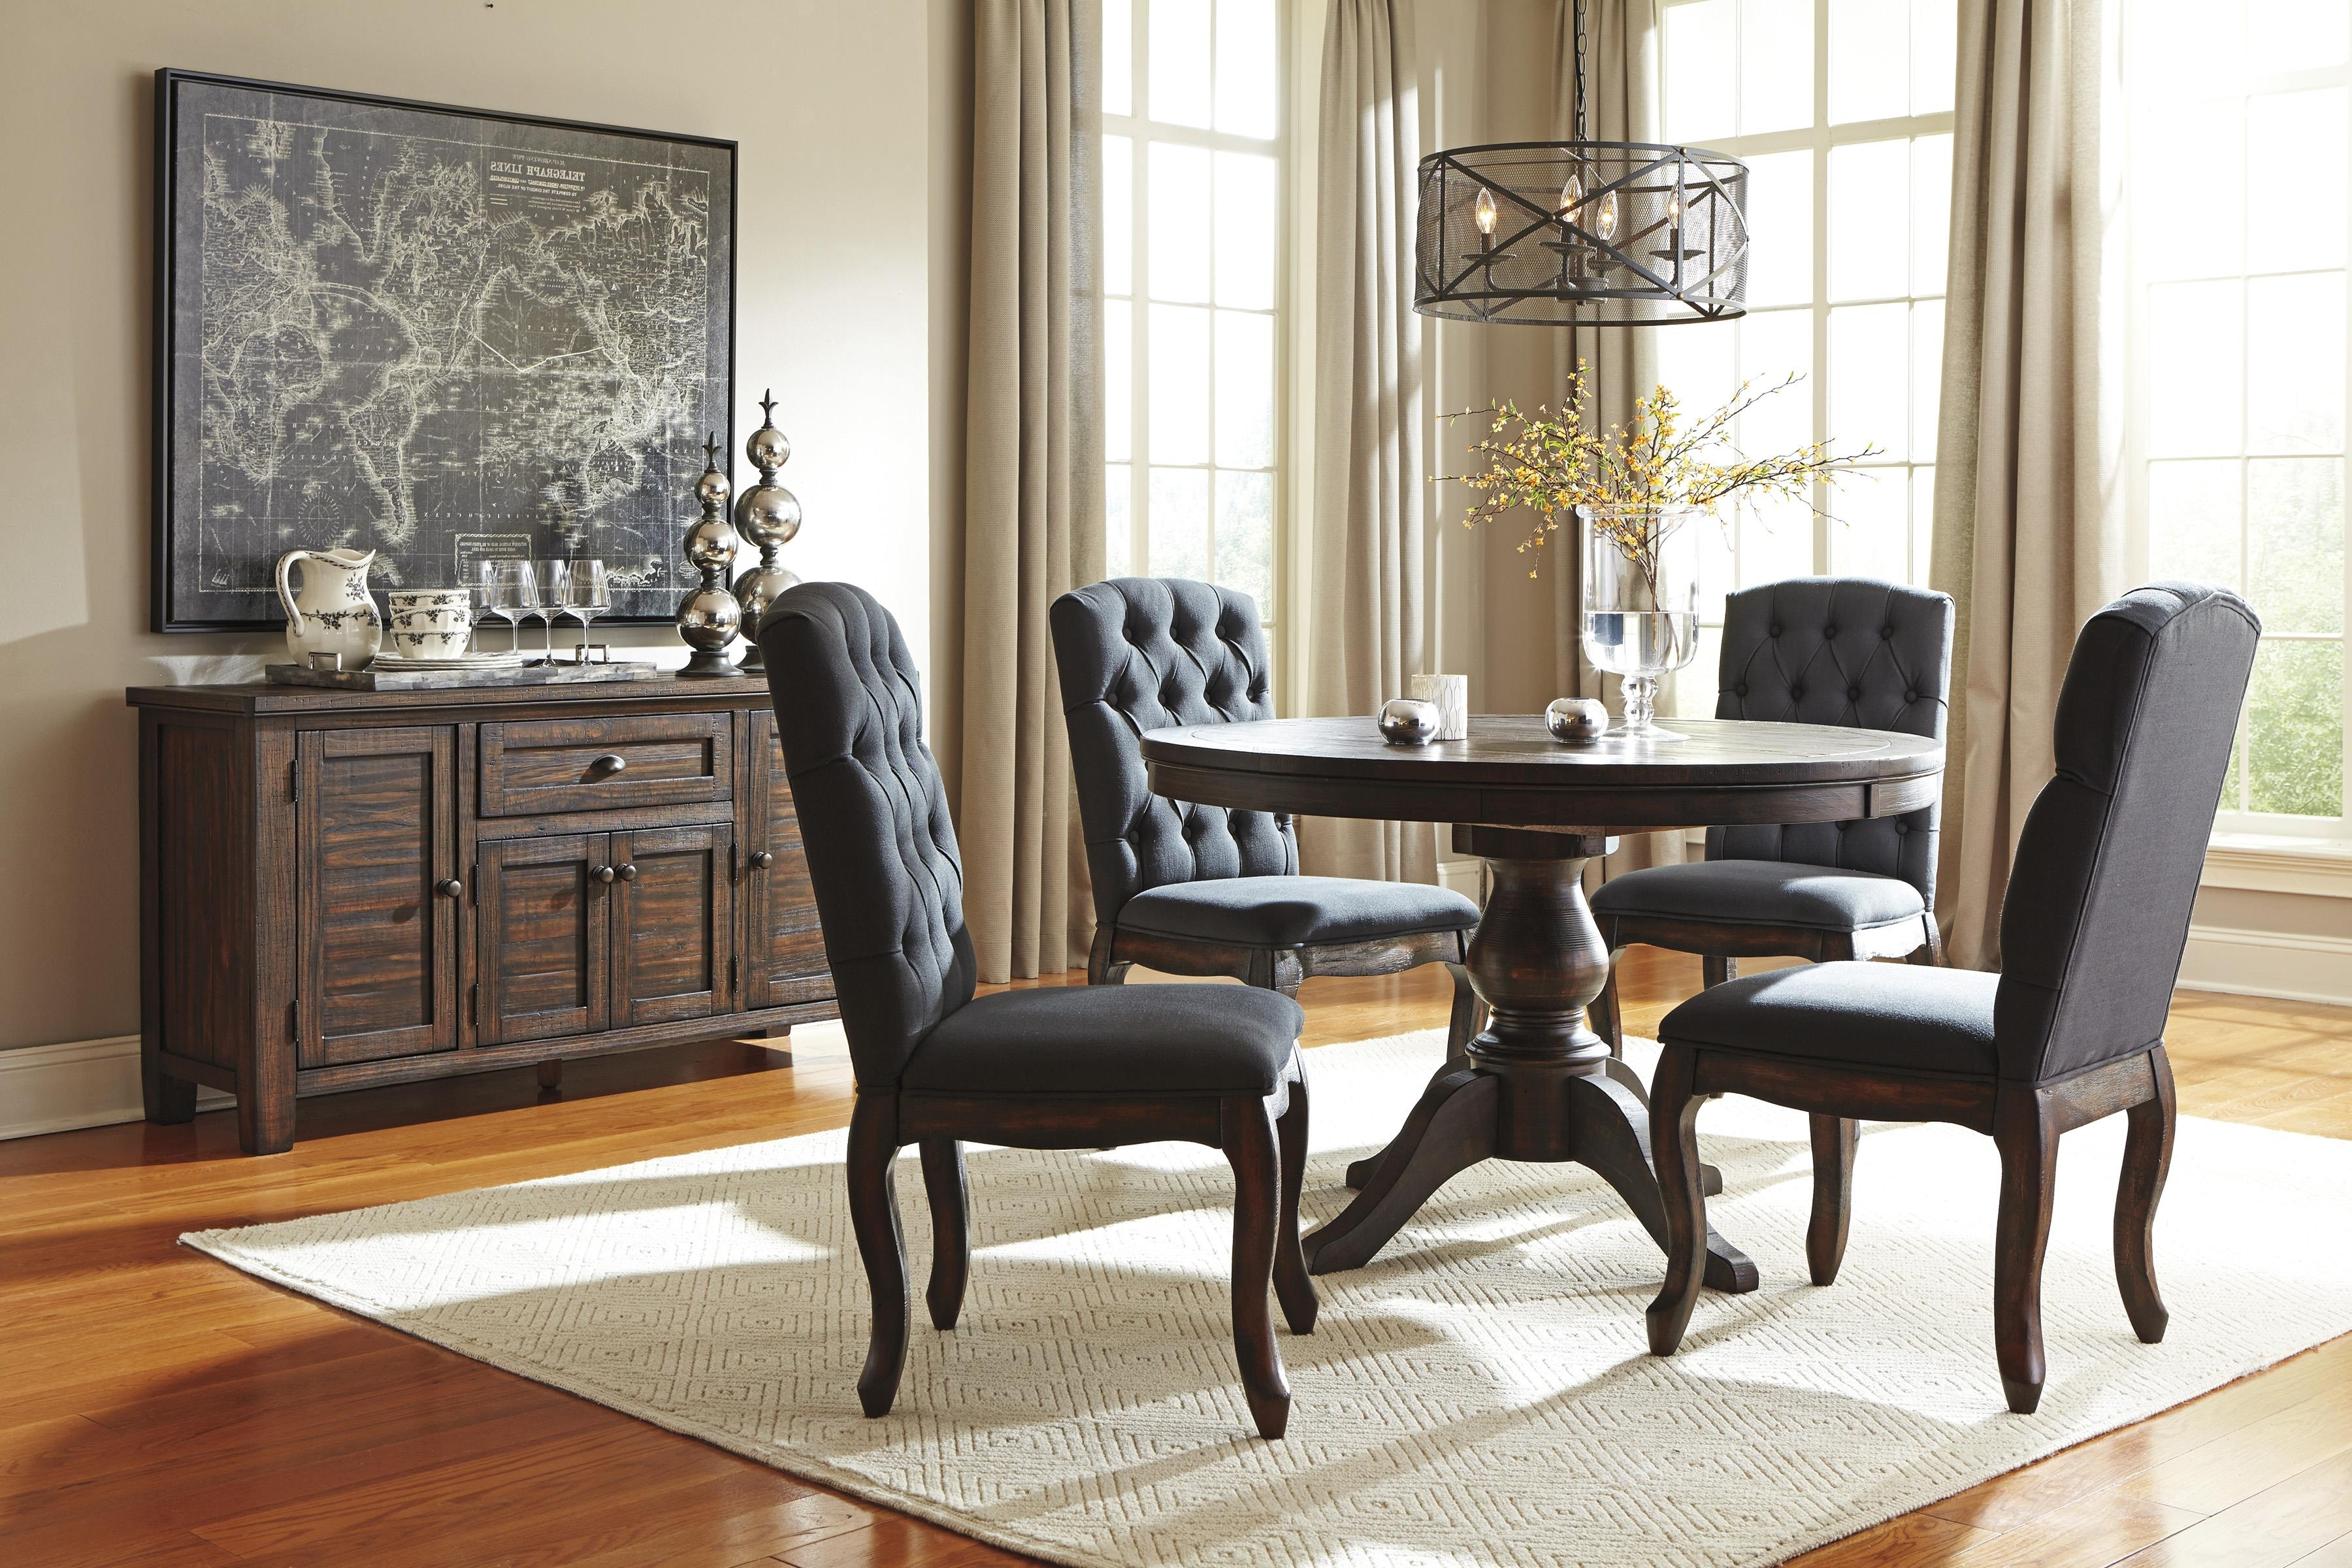 Jaxon 5 Piece Extension Round Dining Sets With Wood Chairs For Fashionable Signature Designashley Trudell Round Dining Room Pedestal (Gallery 12 of 25)